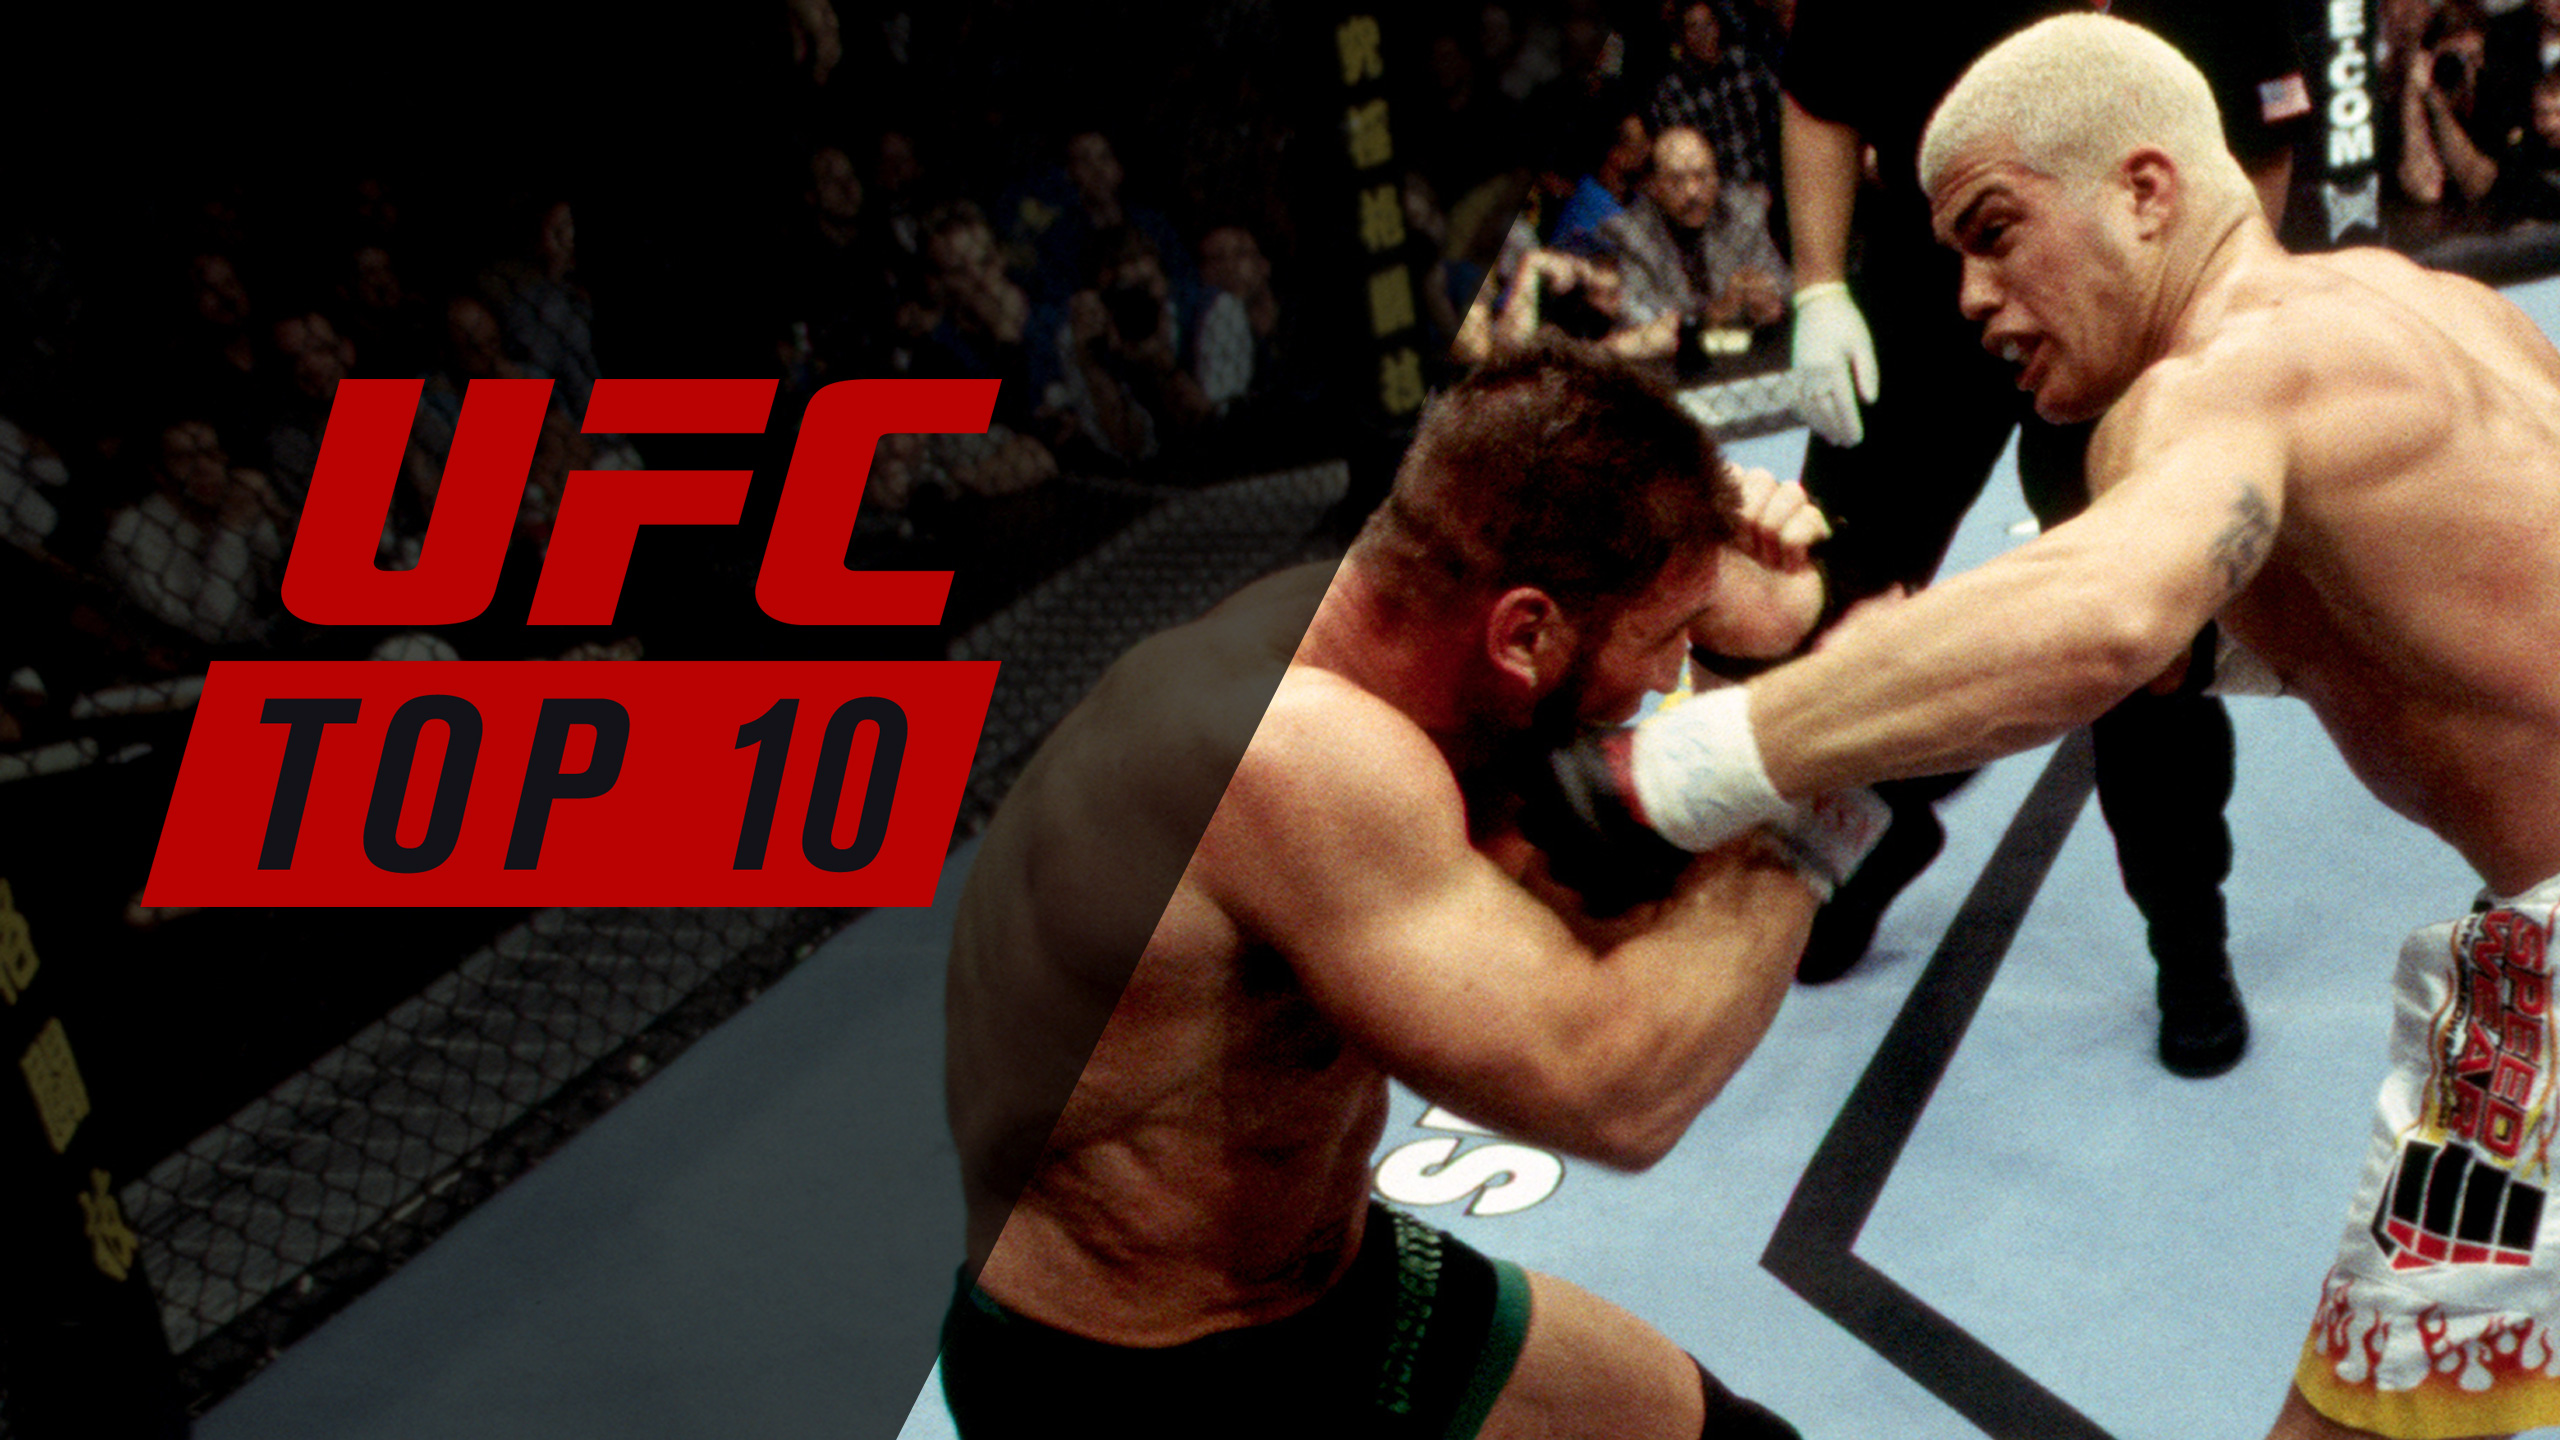 UFC Top 10: Title Fights